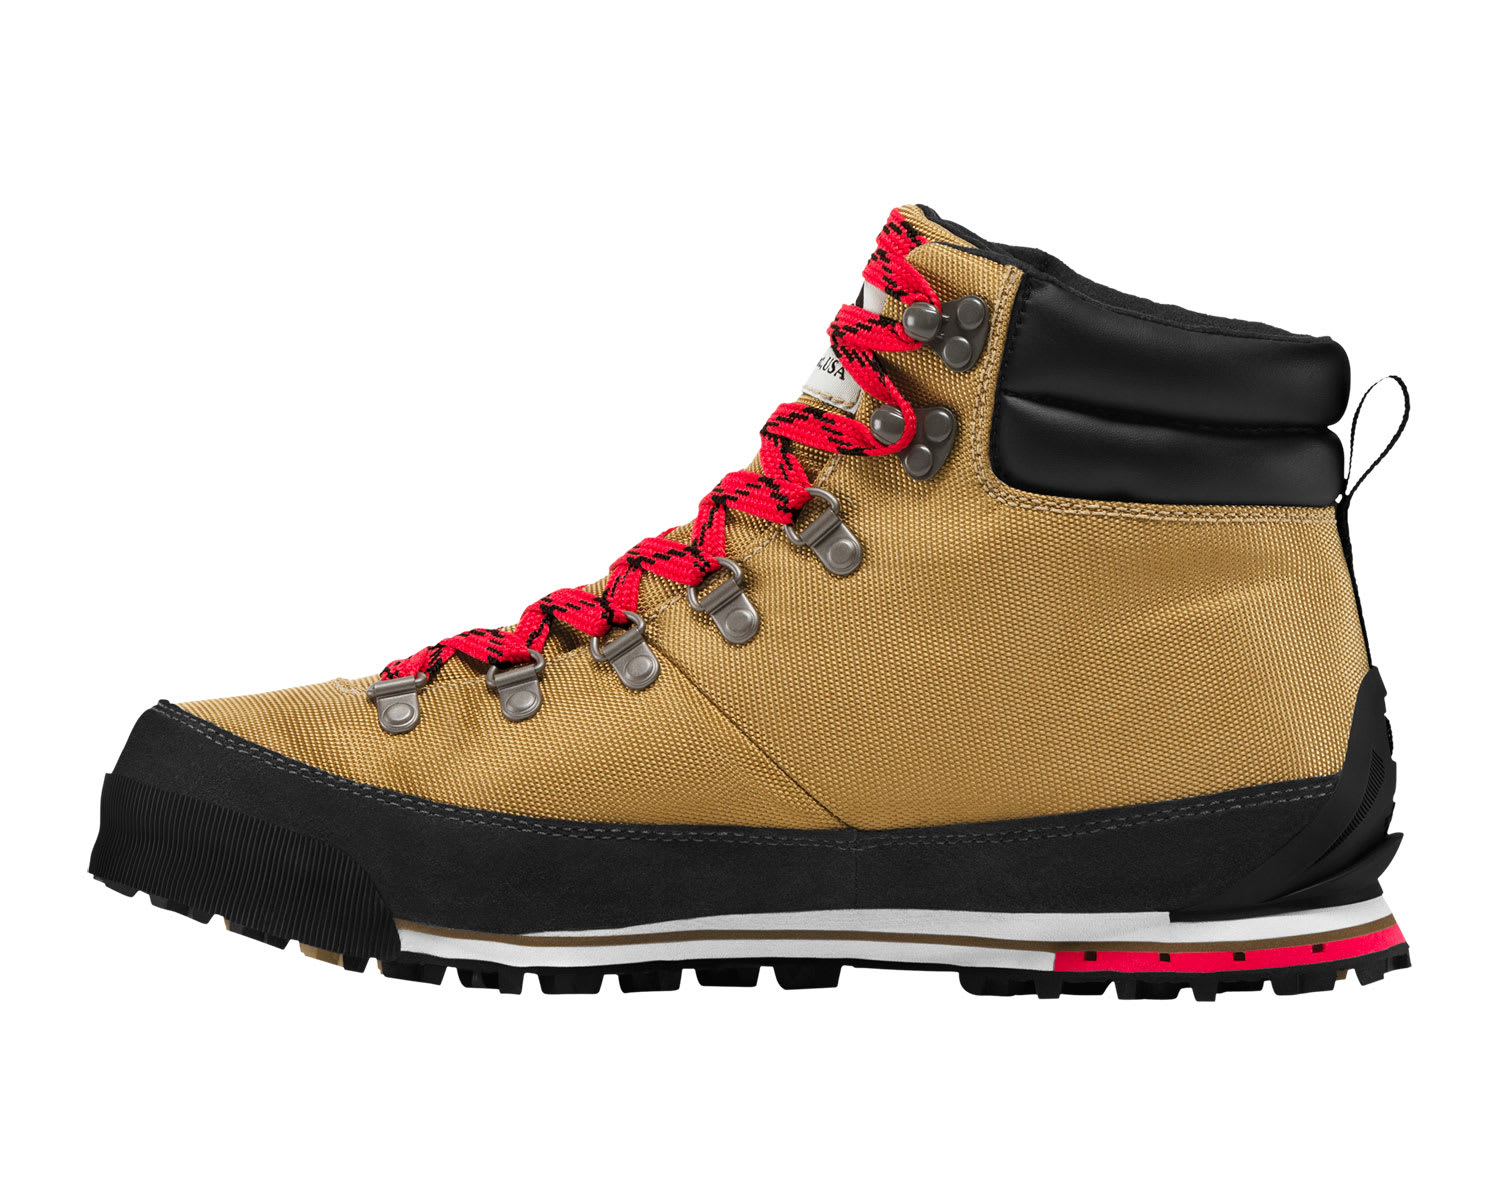 9c2e67d29 The North Face Back-To Berkeley Hiking Boots